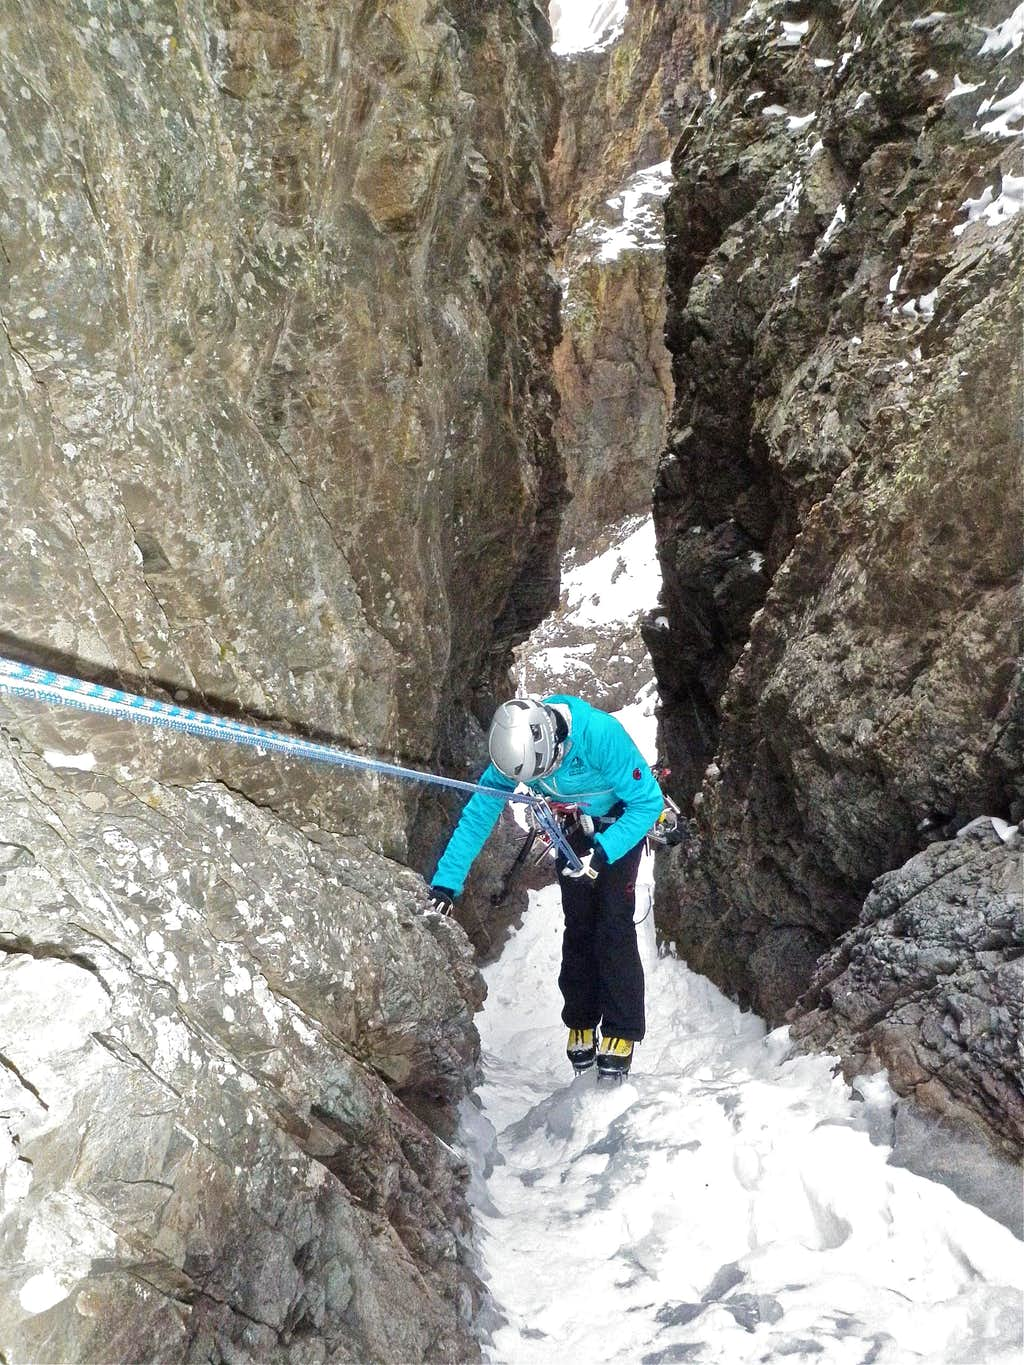 Rappel Anchors on the 2nd pitch